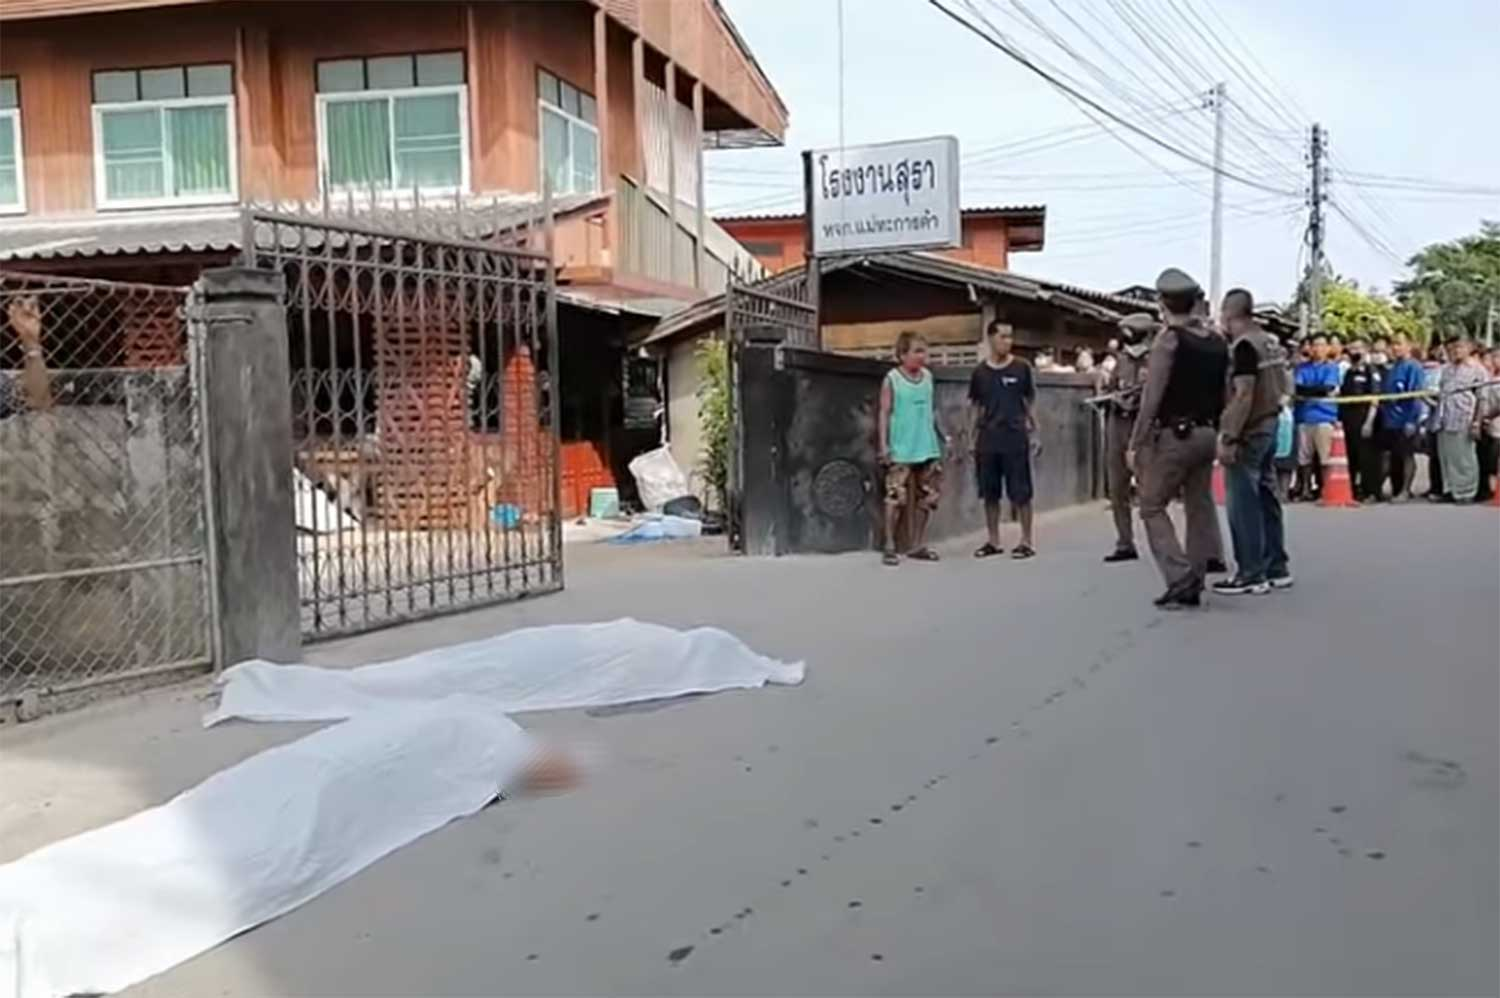 Police inspect the crime scene in front of a house in Mae Tha district, Lampang, where a 52-year-old man shot dead two male relatives and a stabbed a woman on Friday morning. Sheets cover the bodies of the two slain men. (Capture: video on YouTube by Hot News Lampang)